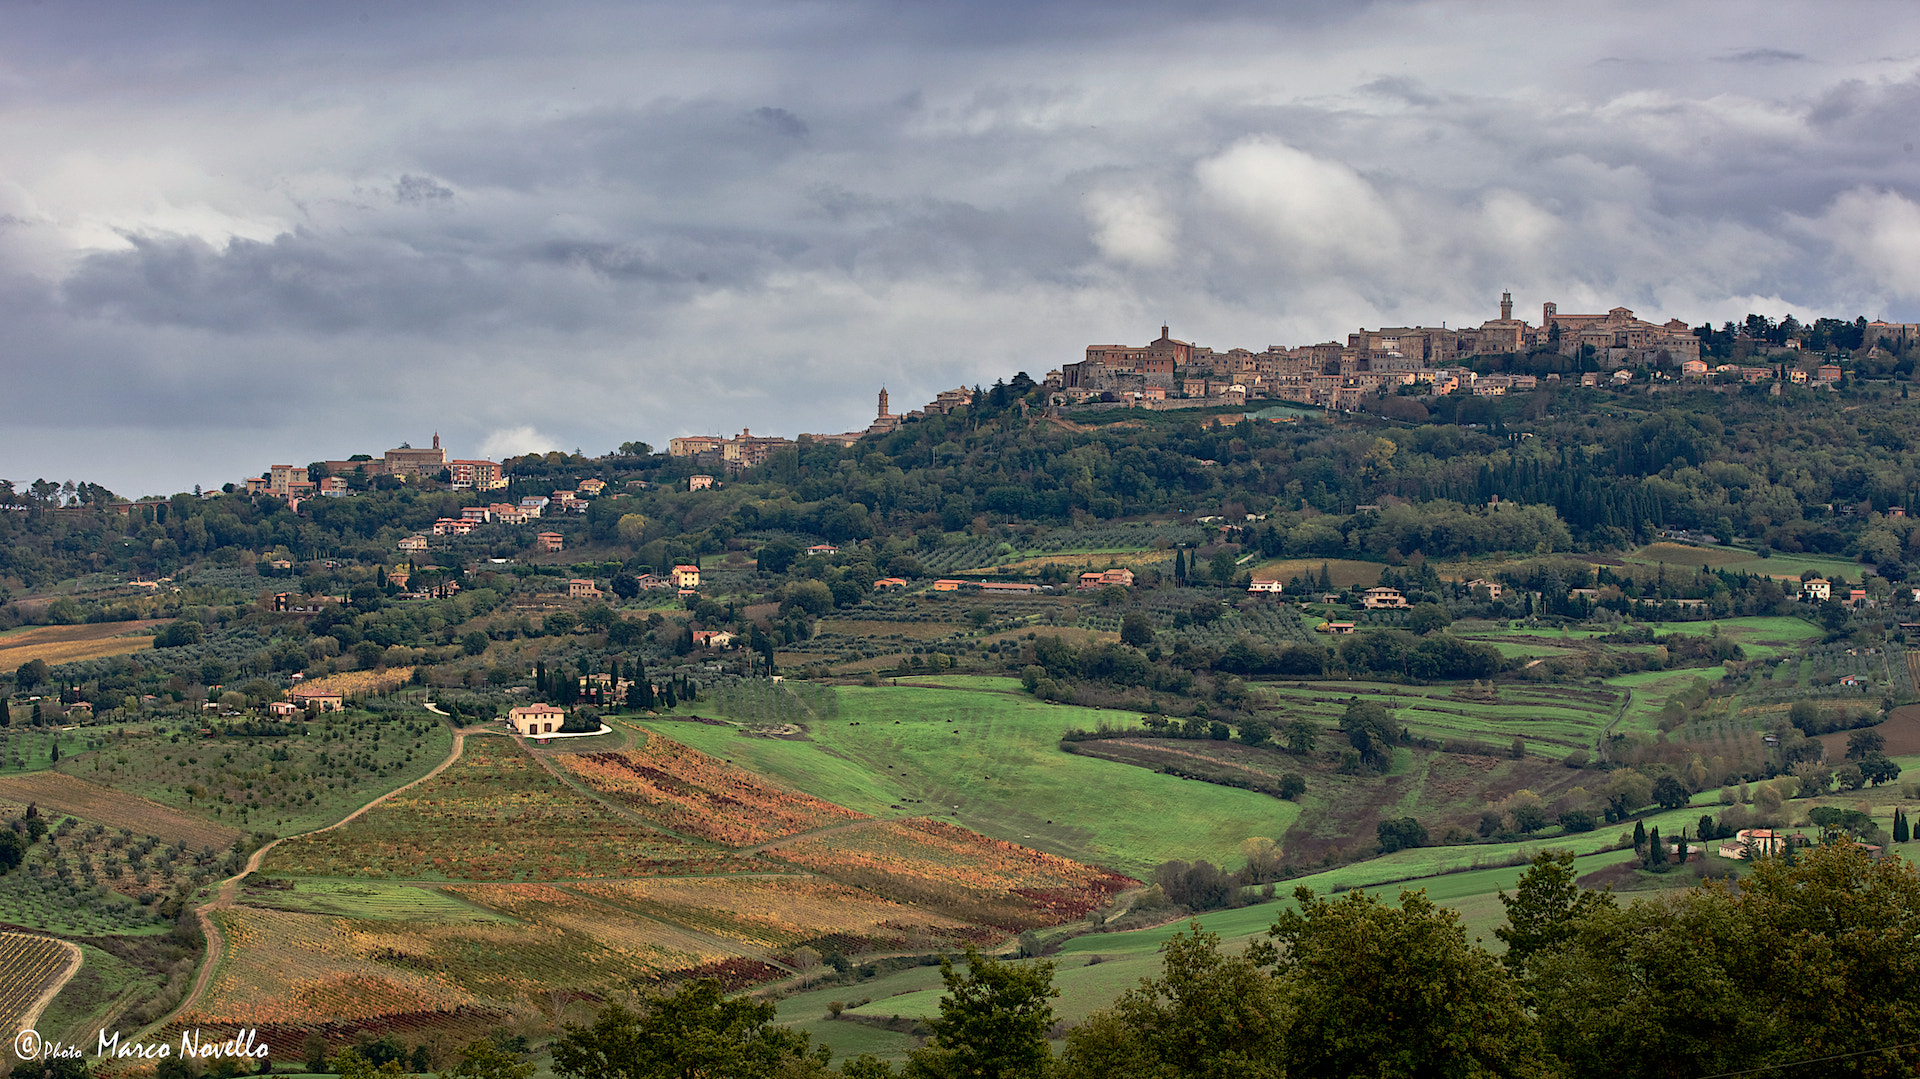 Photograph Montepulciano by Marco Novello on 500px